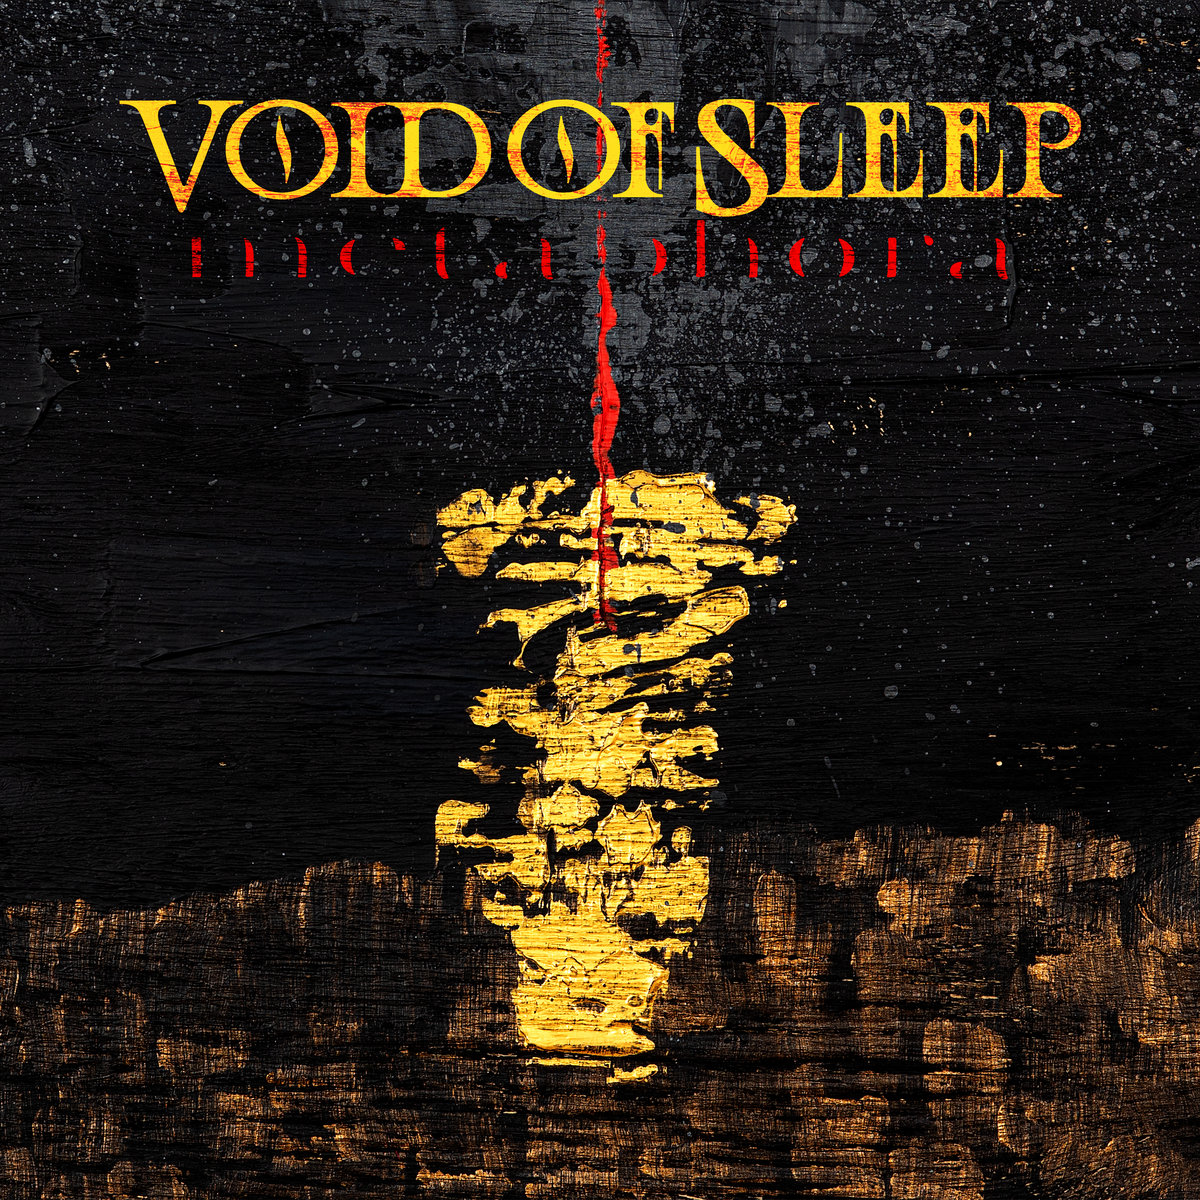 Void of Sleep Metaphora